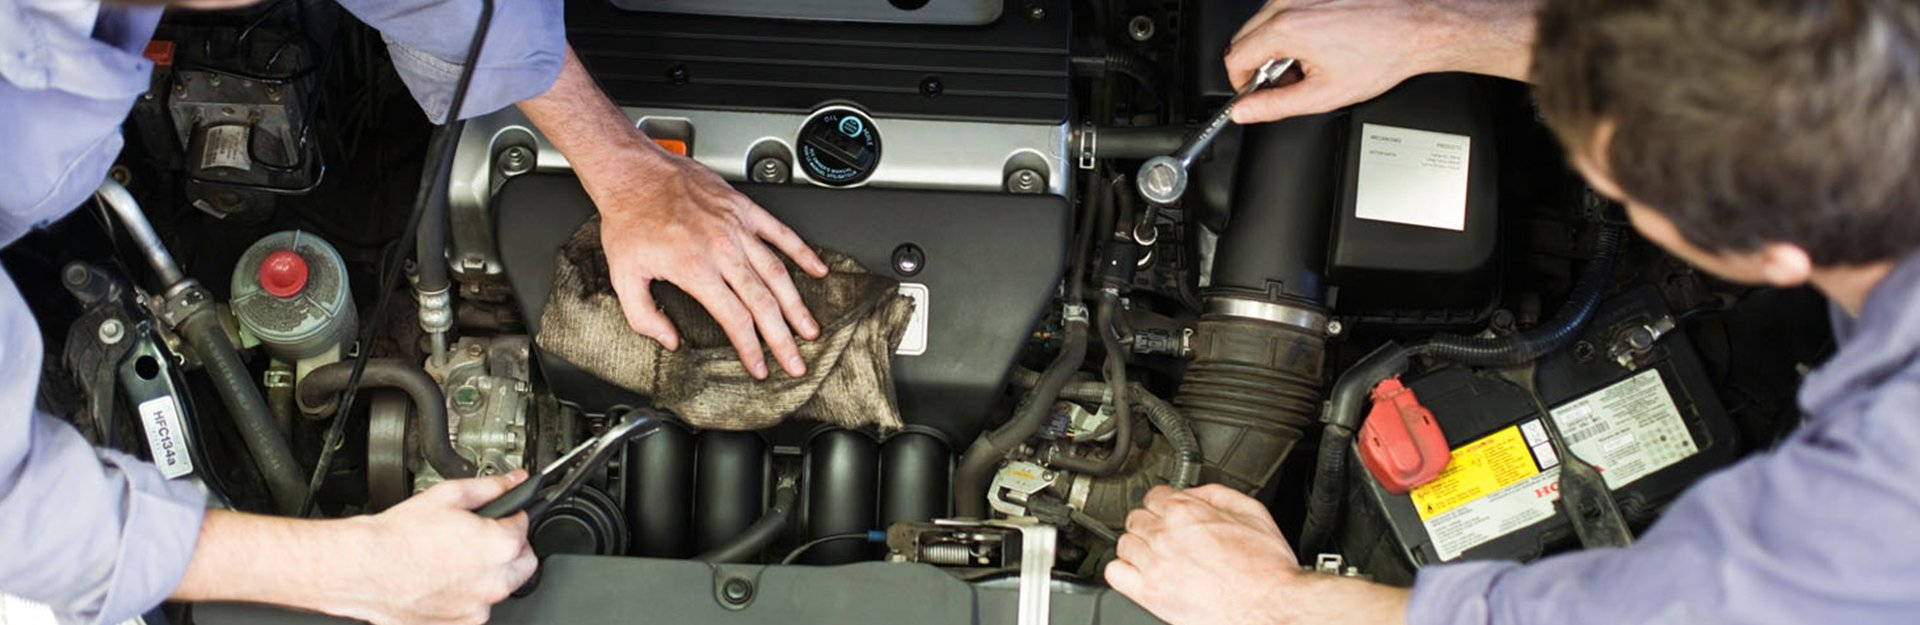 Two mechanics working on a car engine